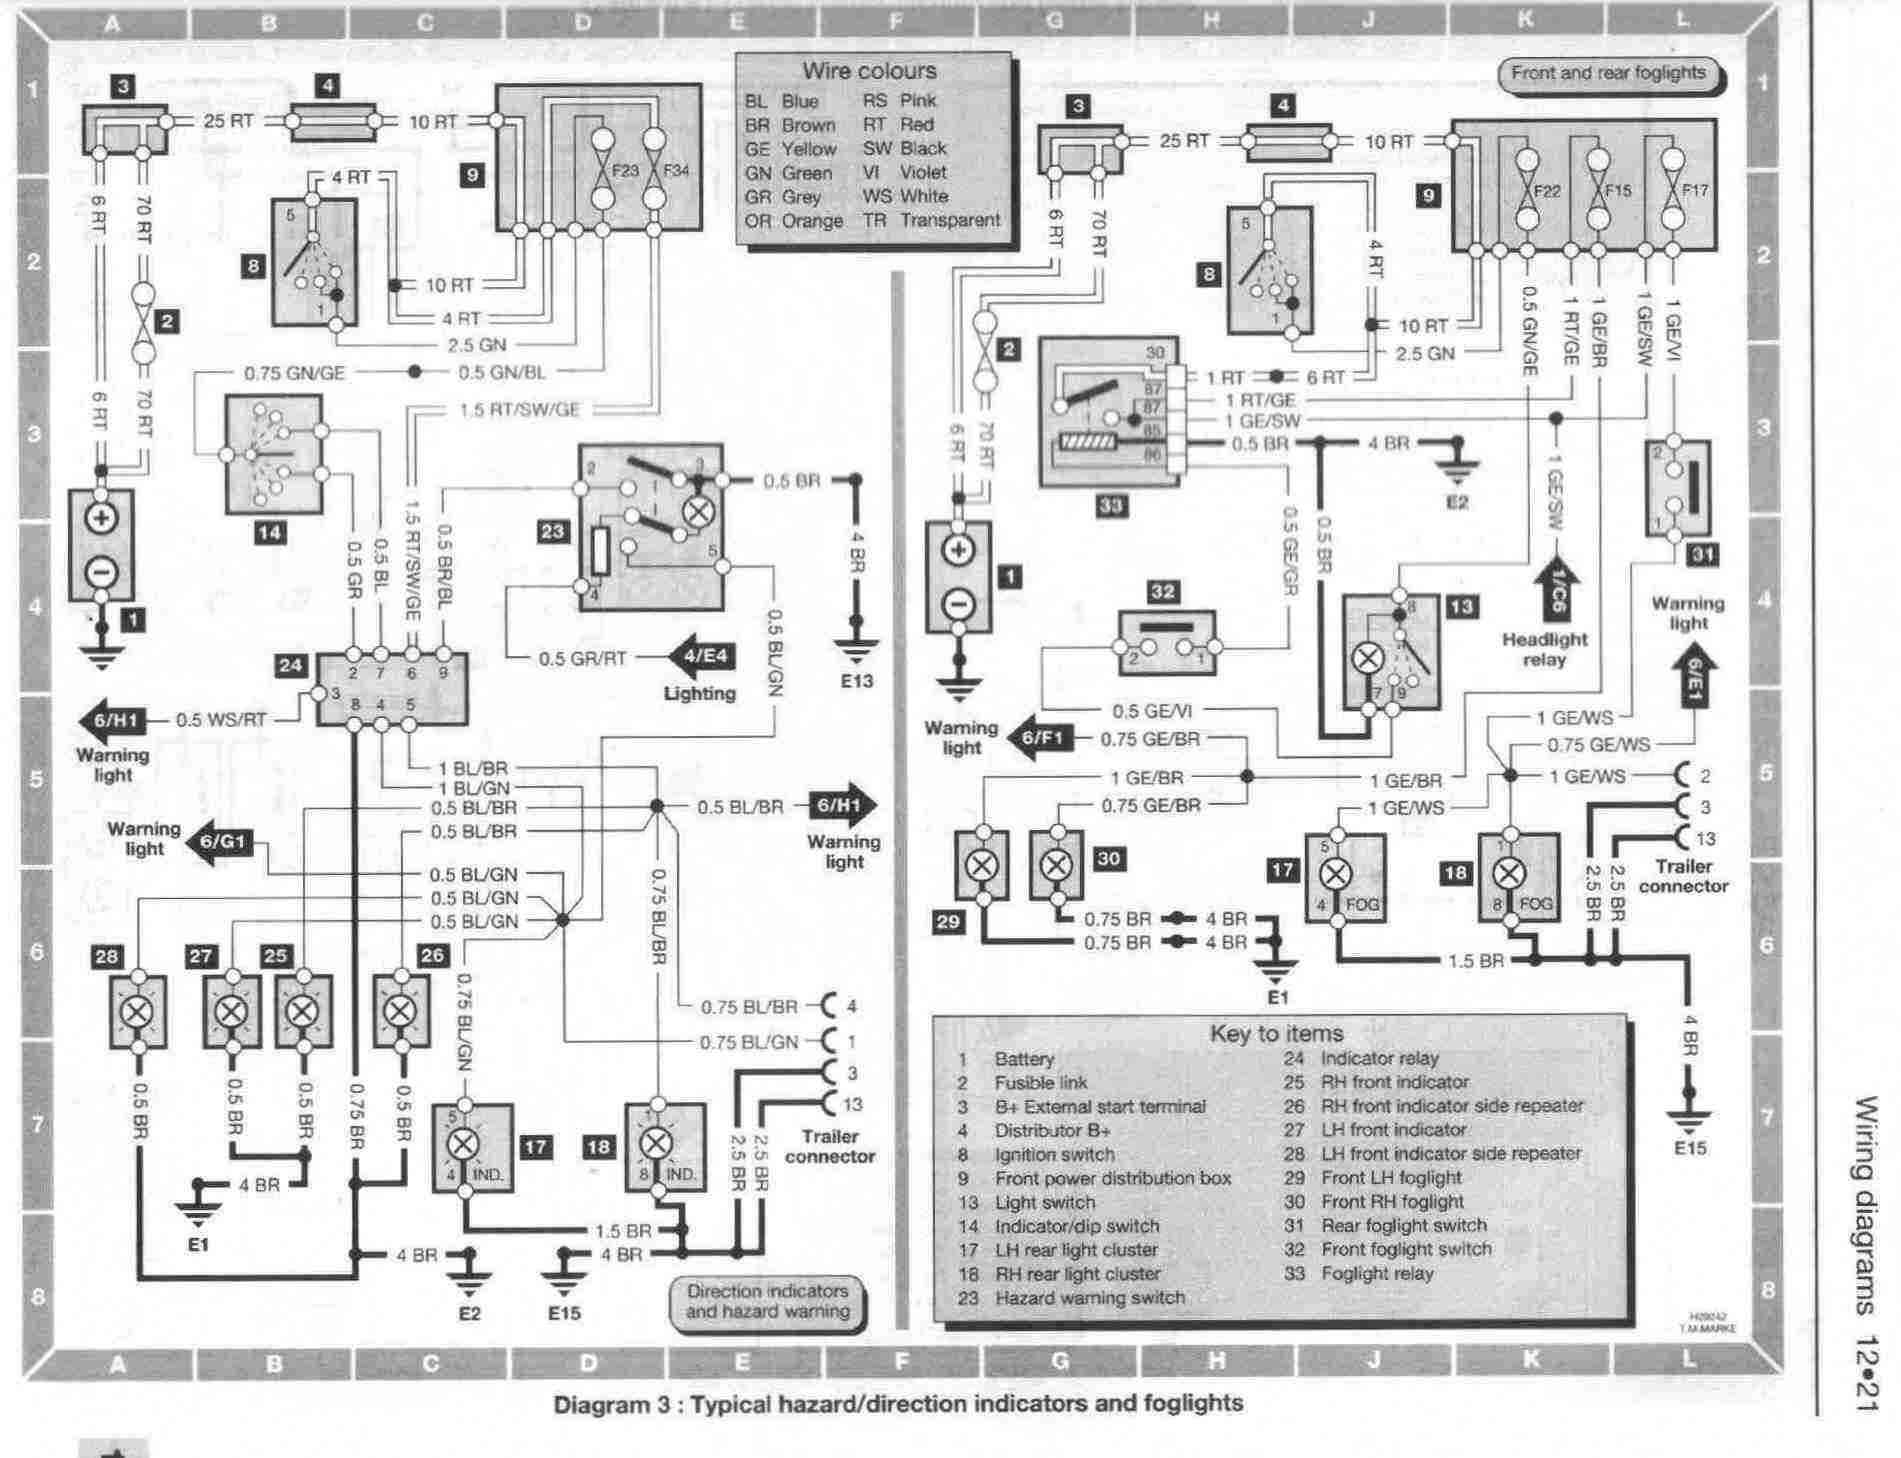 Bmw E36 Wiring Diagram: Comfortable Bmw E36 Wiring Harness Diagram Ideas -  Electrical ,Design